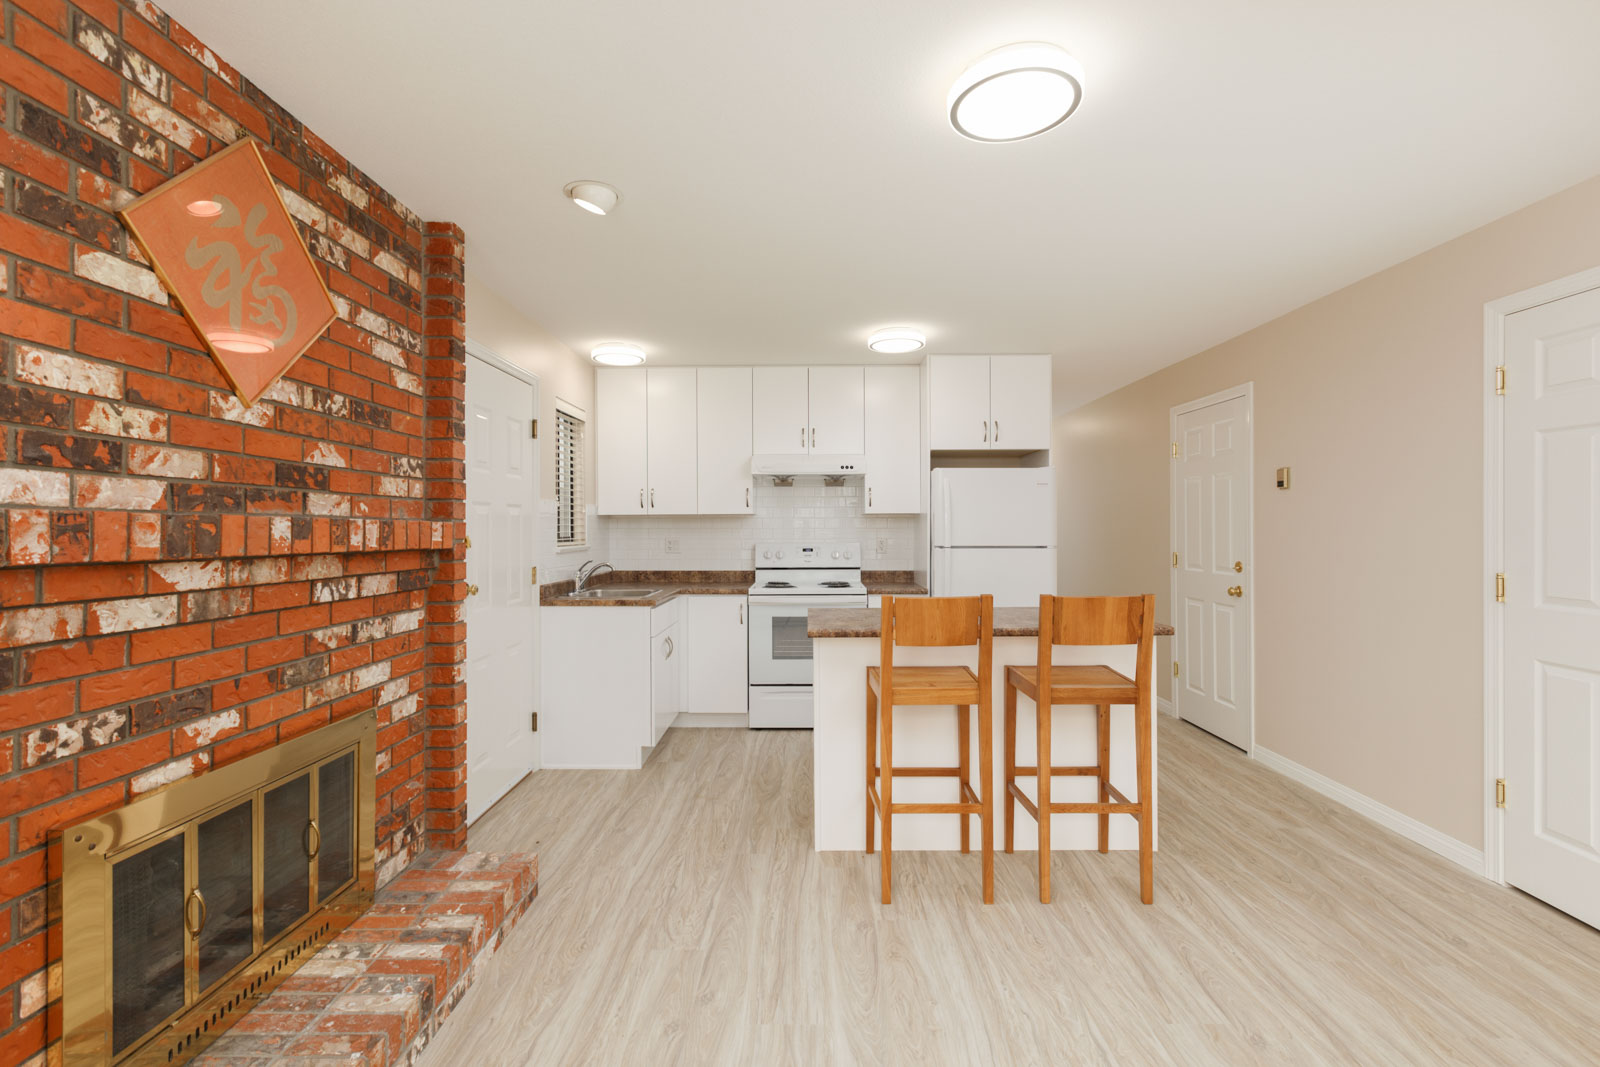 Cozy living area with an authentic brick fireplace to the right of the suite and a kitchen with full range of appliances and a kitchen island to the left, inside a unit with laminate hardwood flooring in a rental home in East Vancouver provided by Birds Nest Properties